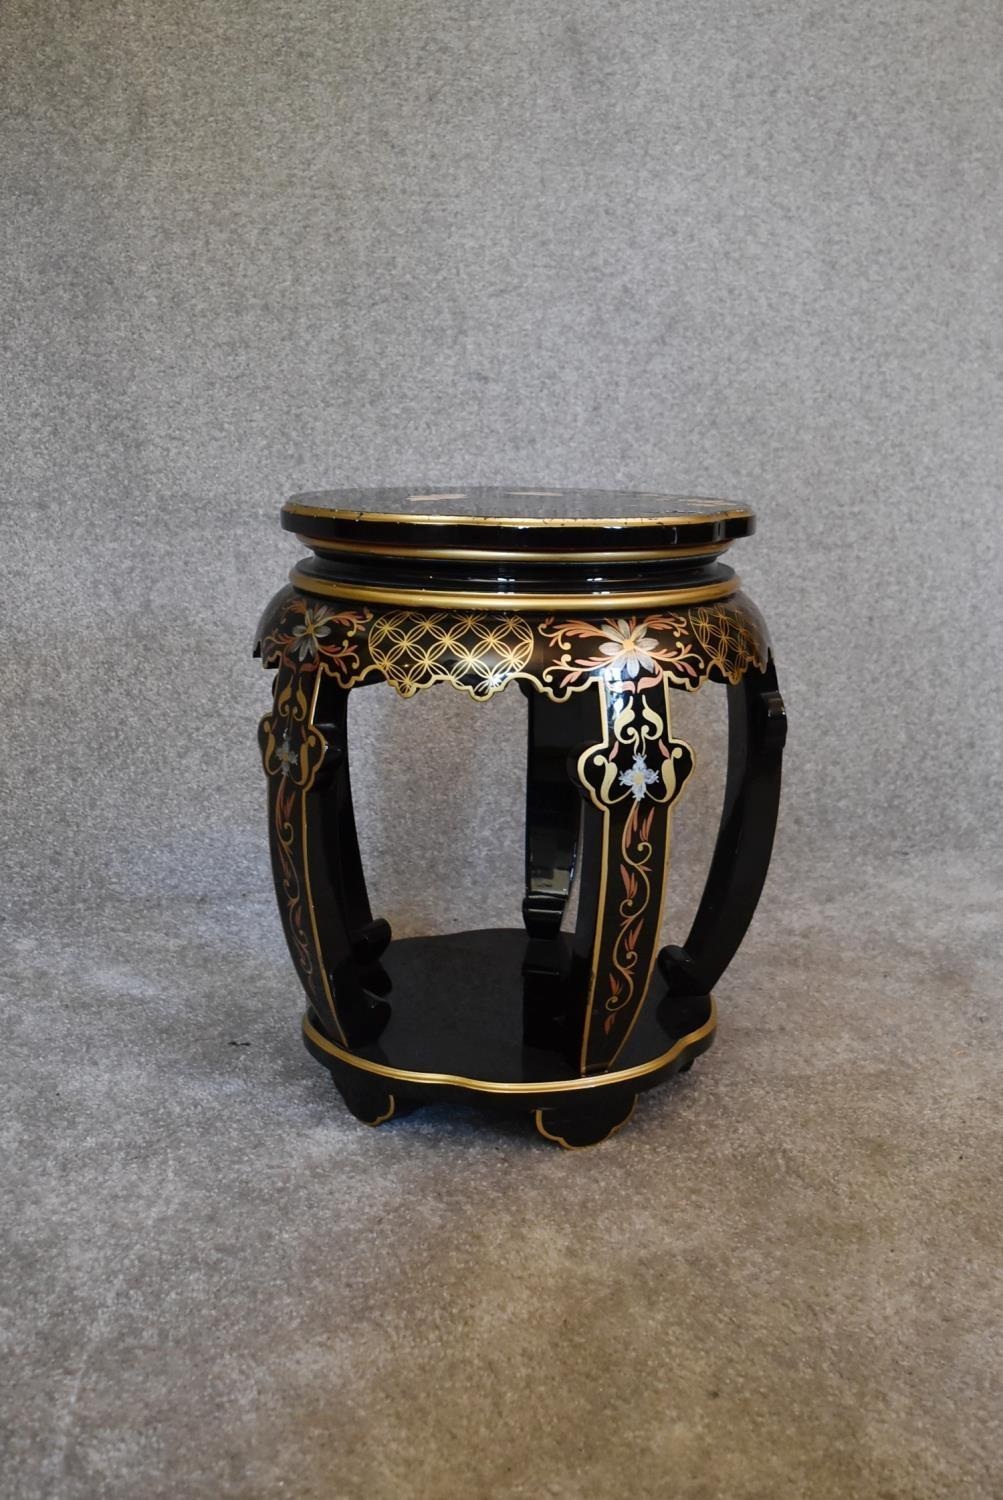 Lot 20 - A black lacquered and gilt decorated Chinese stool. 50cm tall x 35cm diameter.